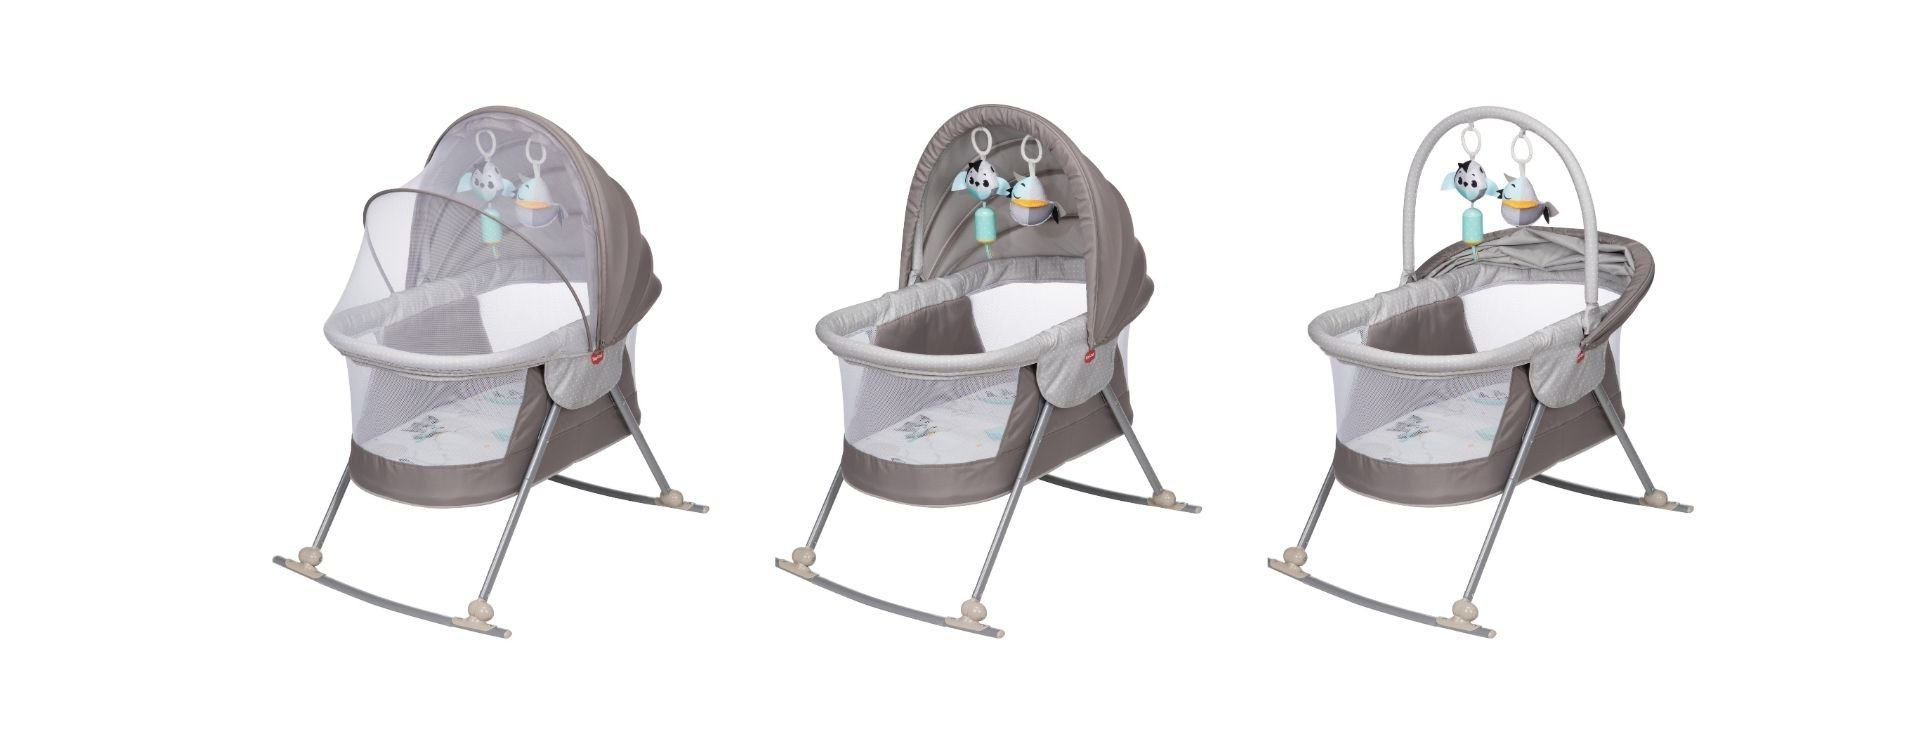 A well-moderated, beautifully designed environment for your little one